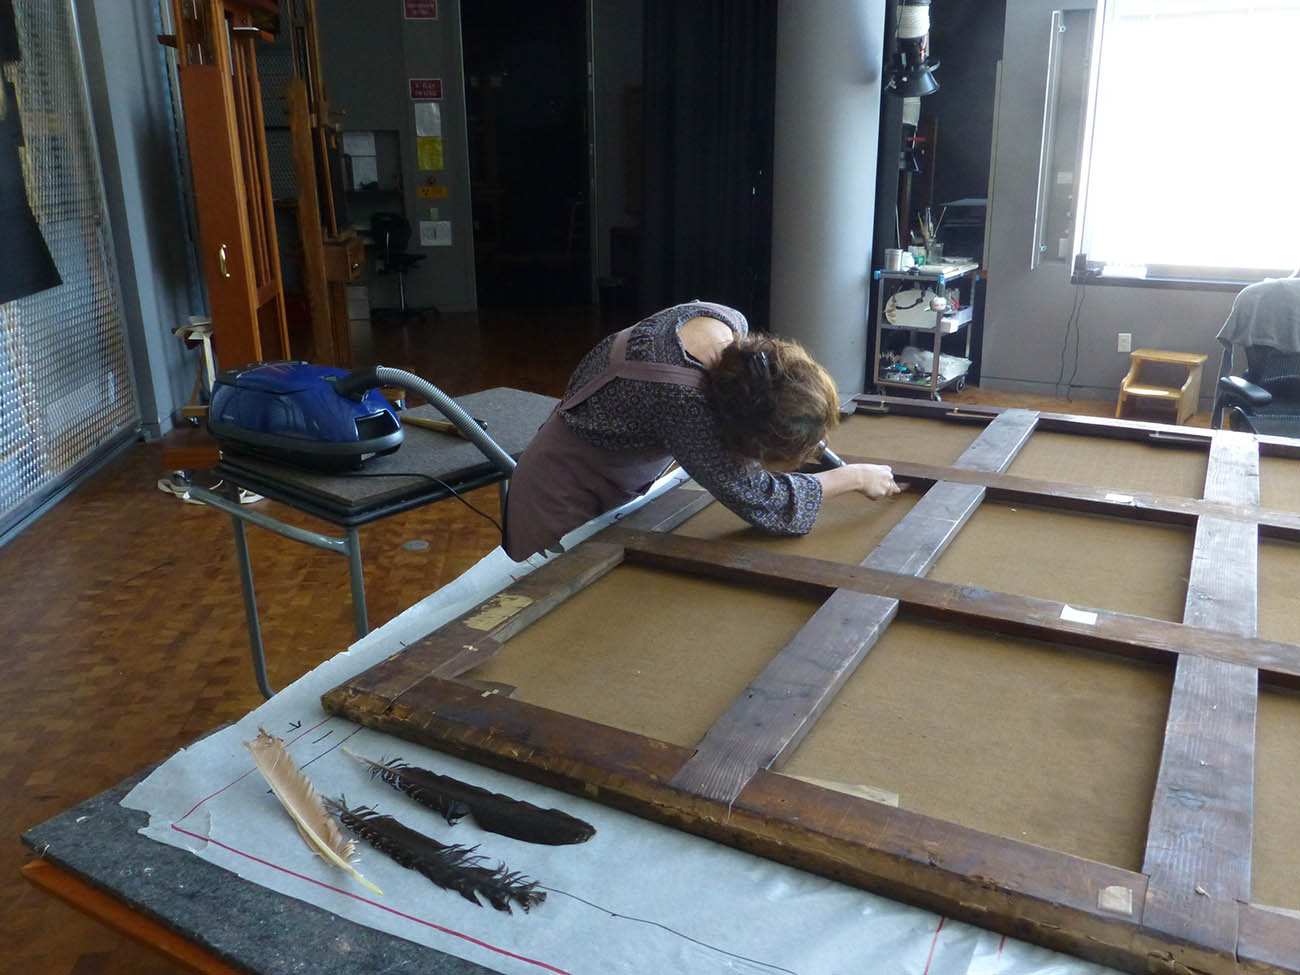 Vacuuming the back of the canvas to remove excess dirt. The goose feathers, seen in the foreground, are what I used to dislodge dust and dirt on the back of the lining canvas and under the wooden stretcher bars.